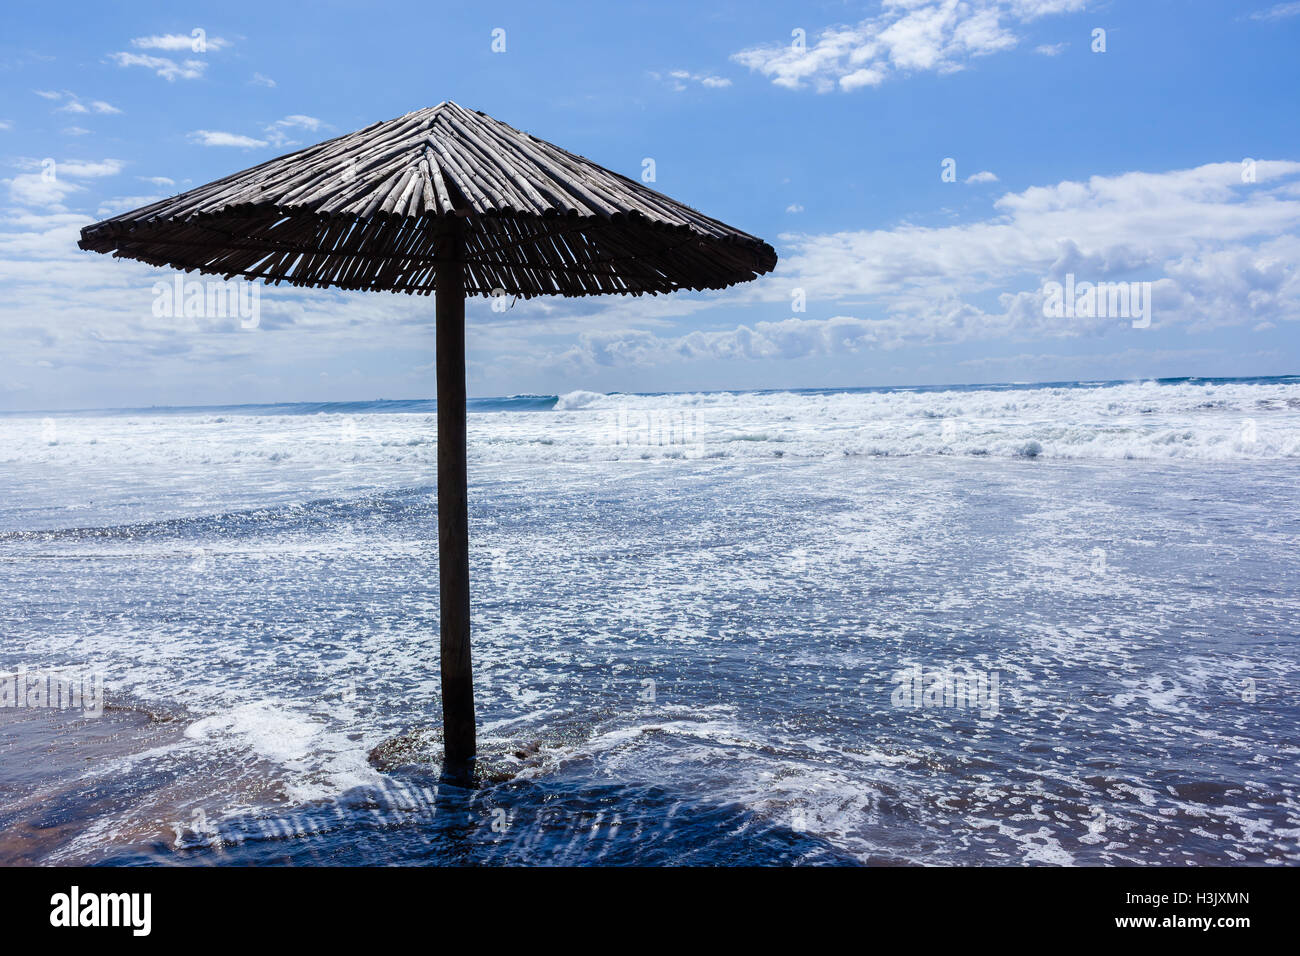 Beach umbrella on sands covered by sea water wash from ocean storm wave conditions. - Stock Image